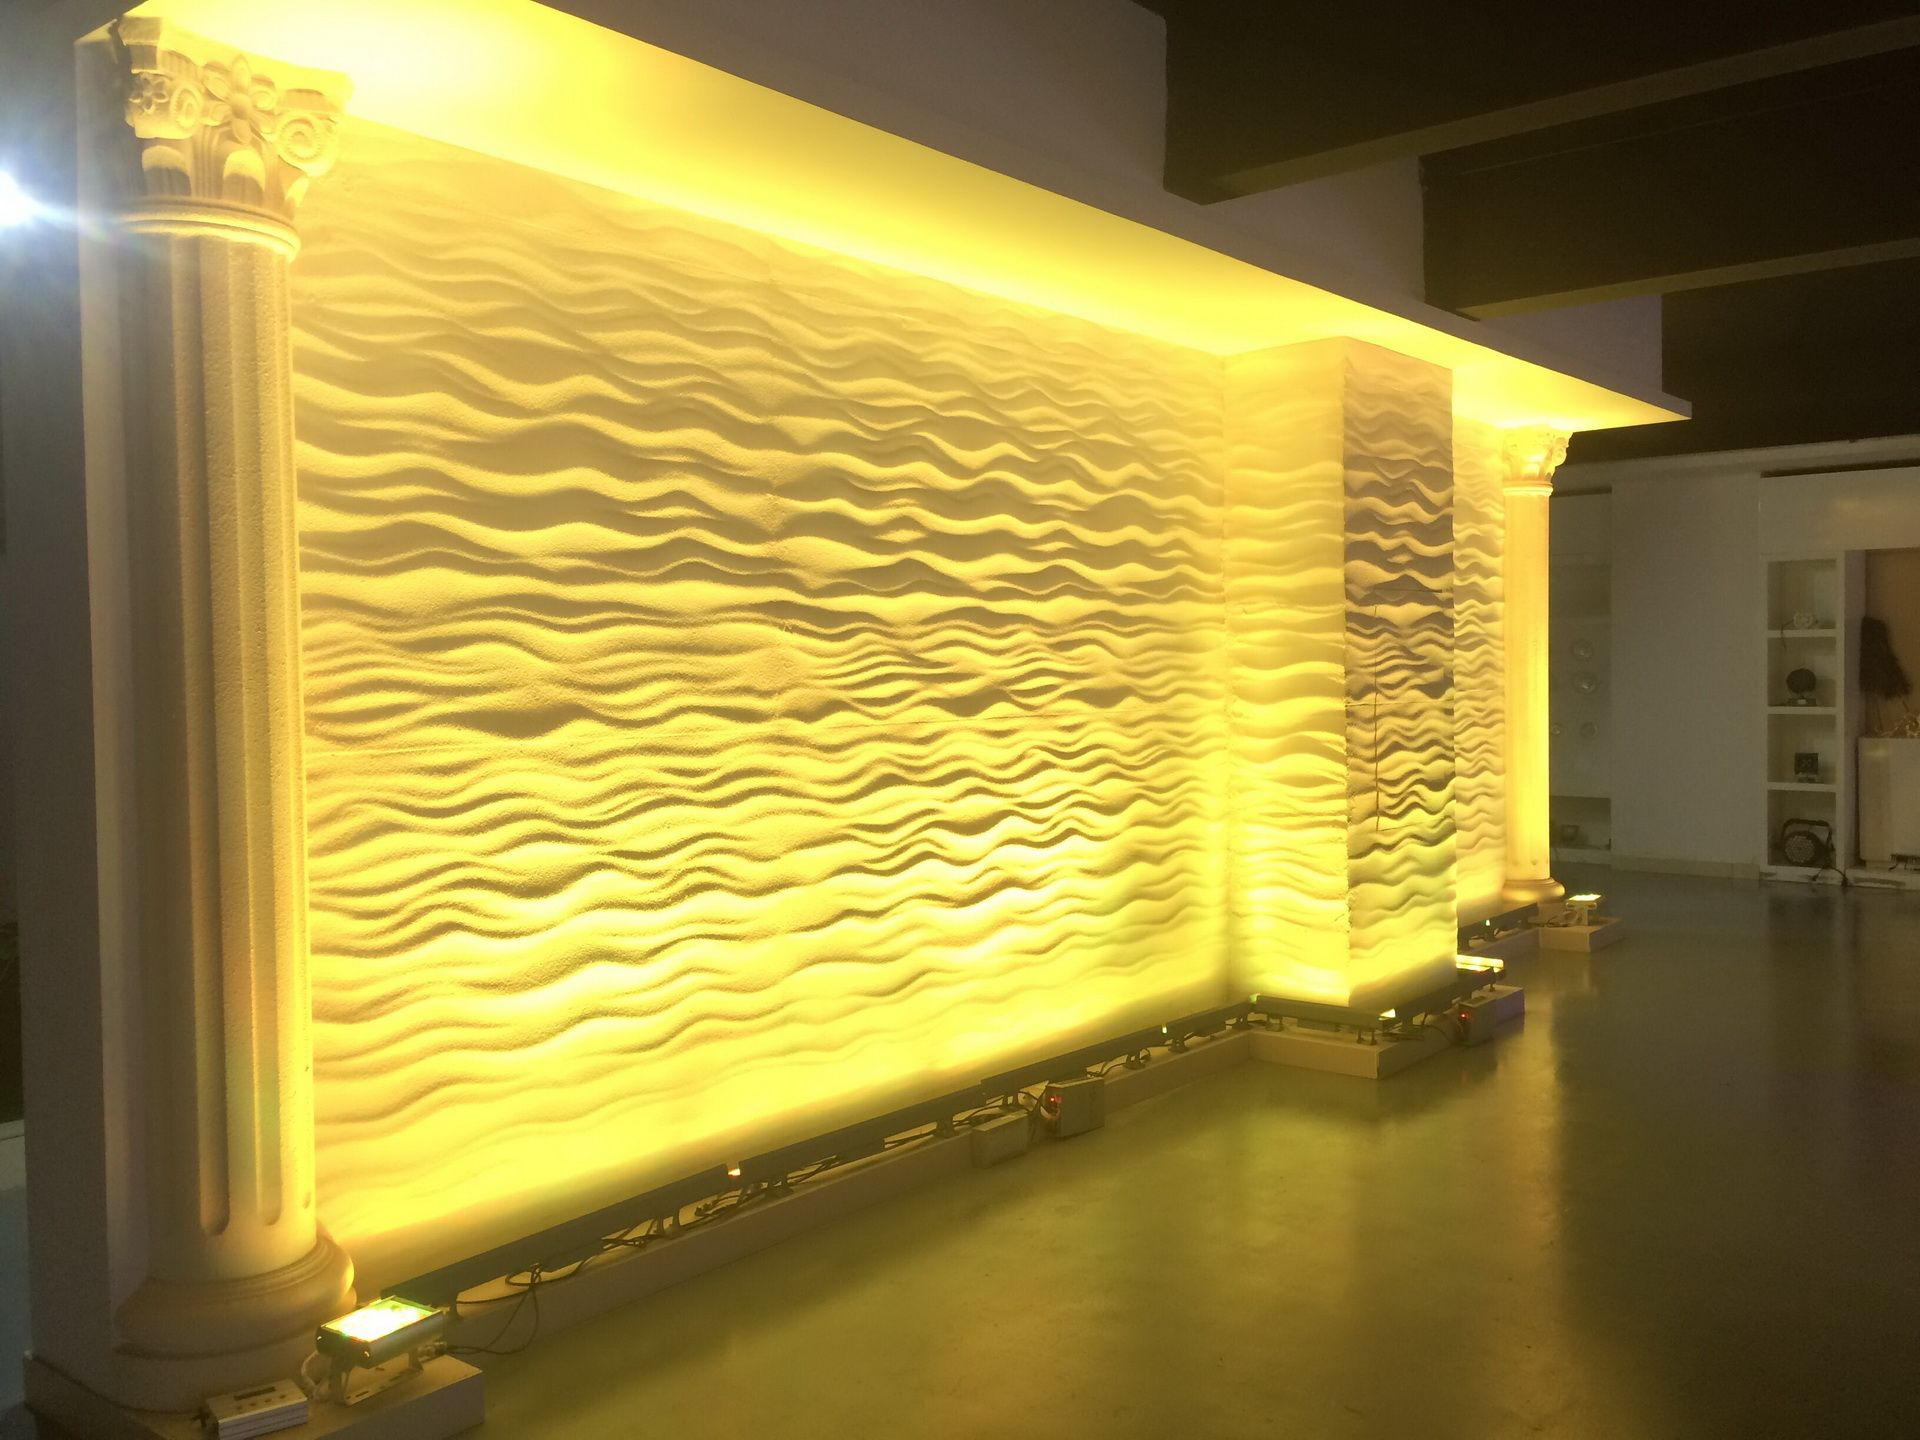 To Brighten Up Your House With Wall Wash Lights Interior Warisan Lighting Wall Wash Lighting Wall Lights Washing Walls